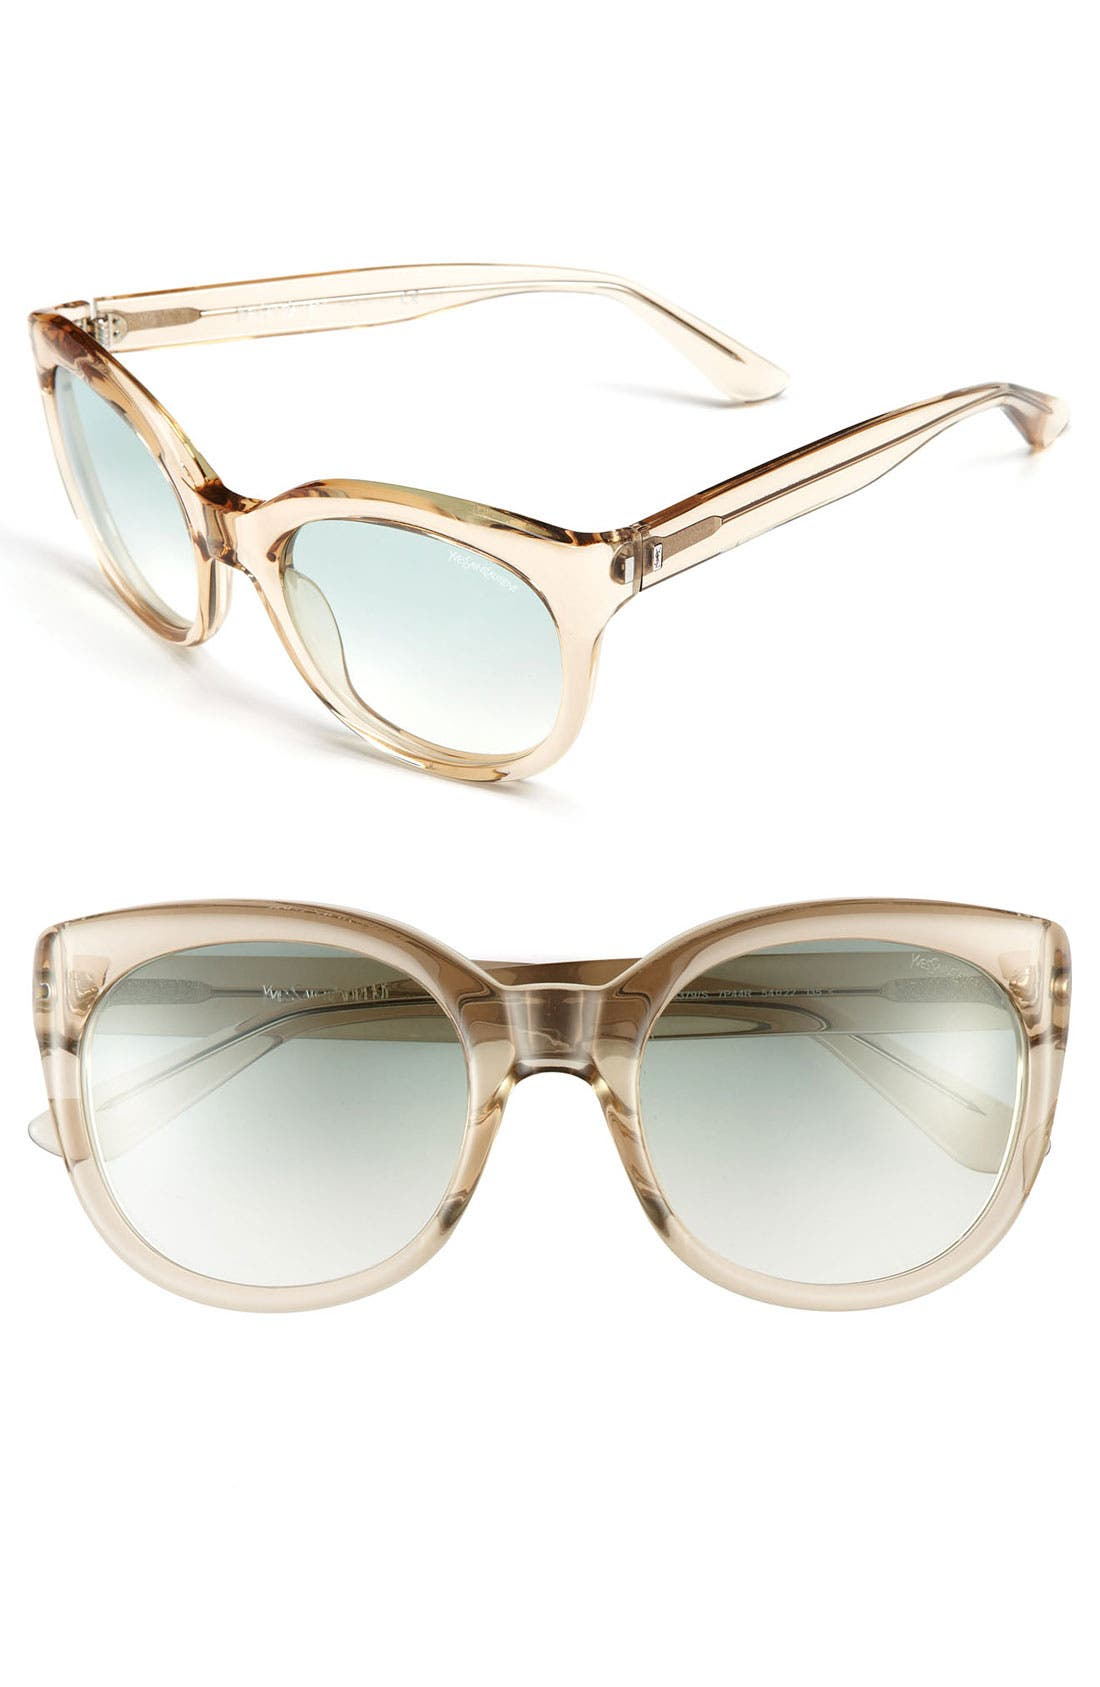 Saint Laurent Cat's Eye Sunglasses,                             Main thumbnail 3, color,